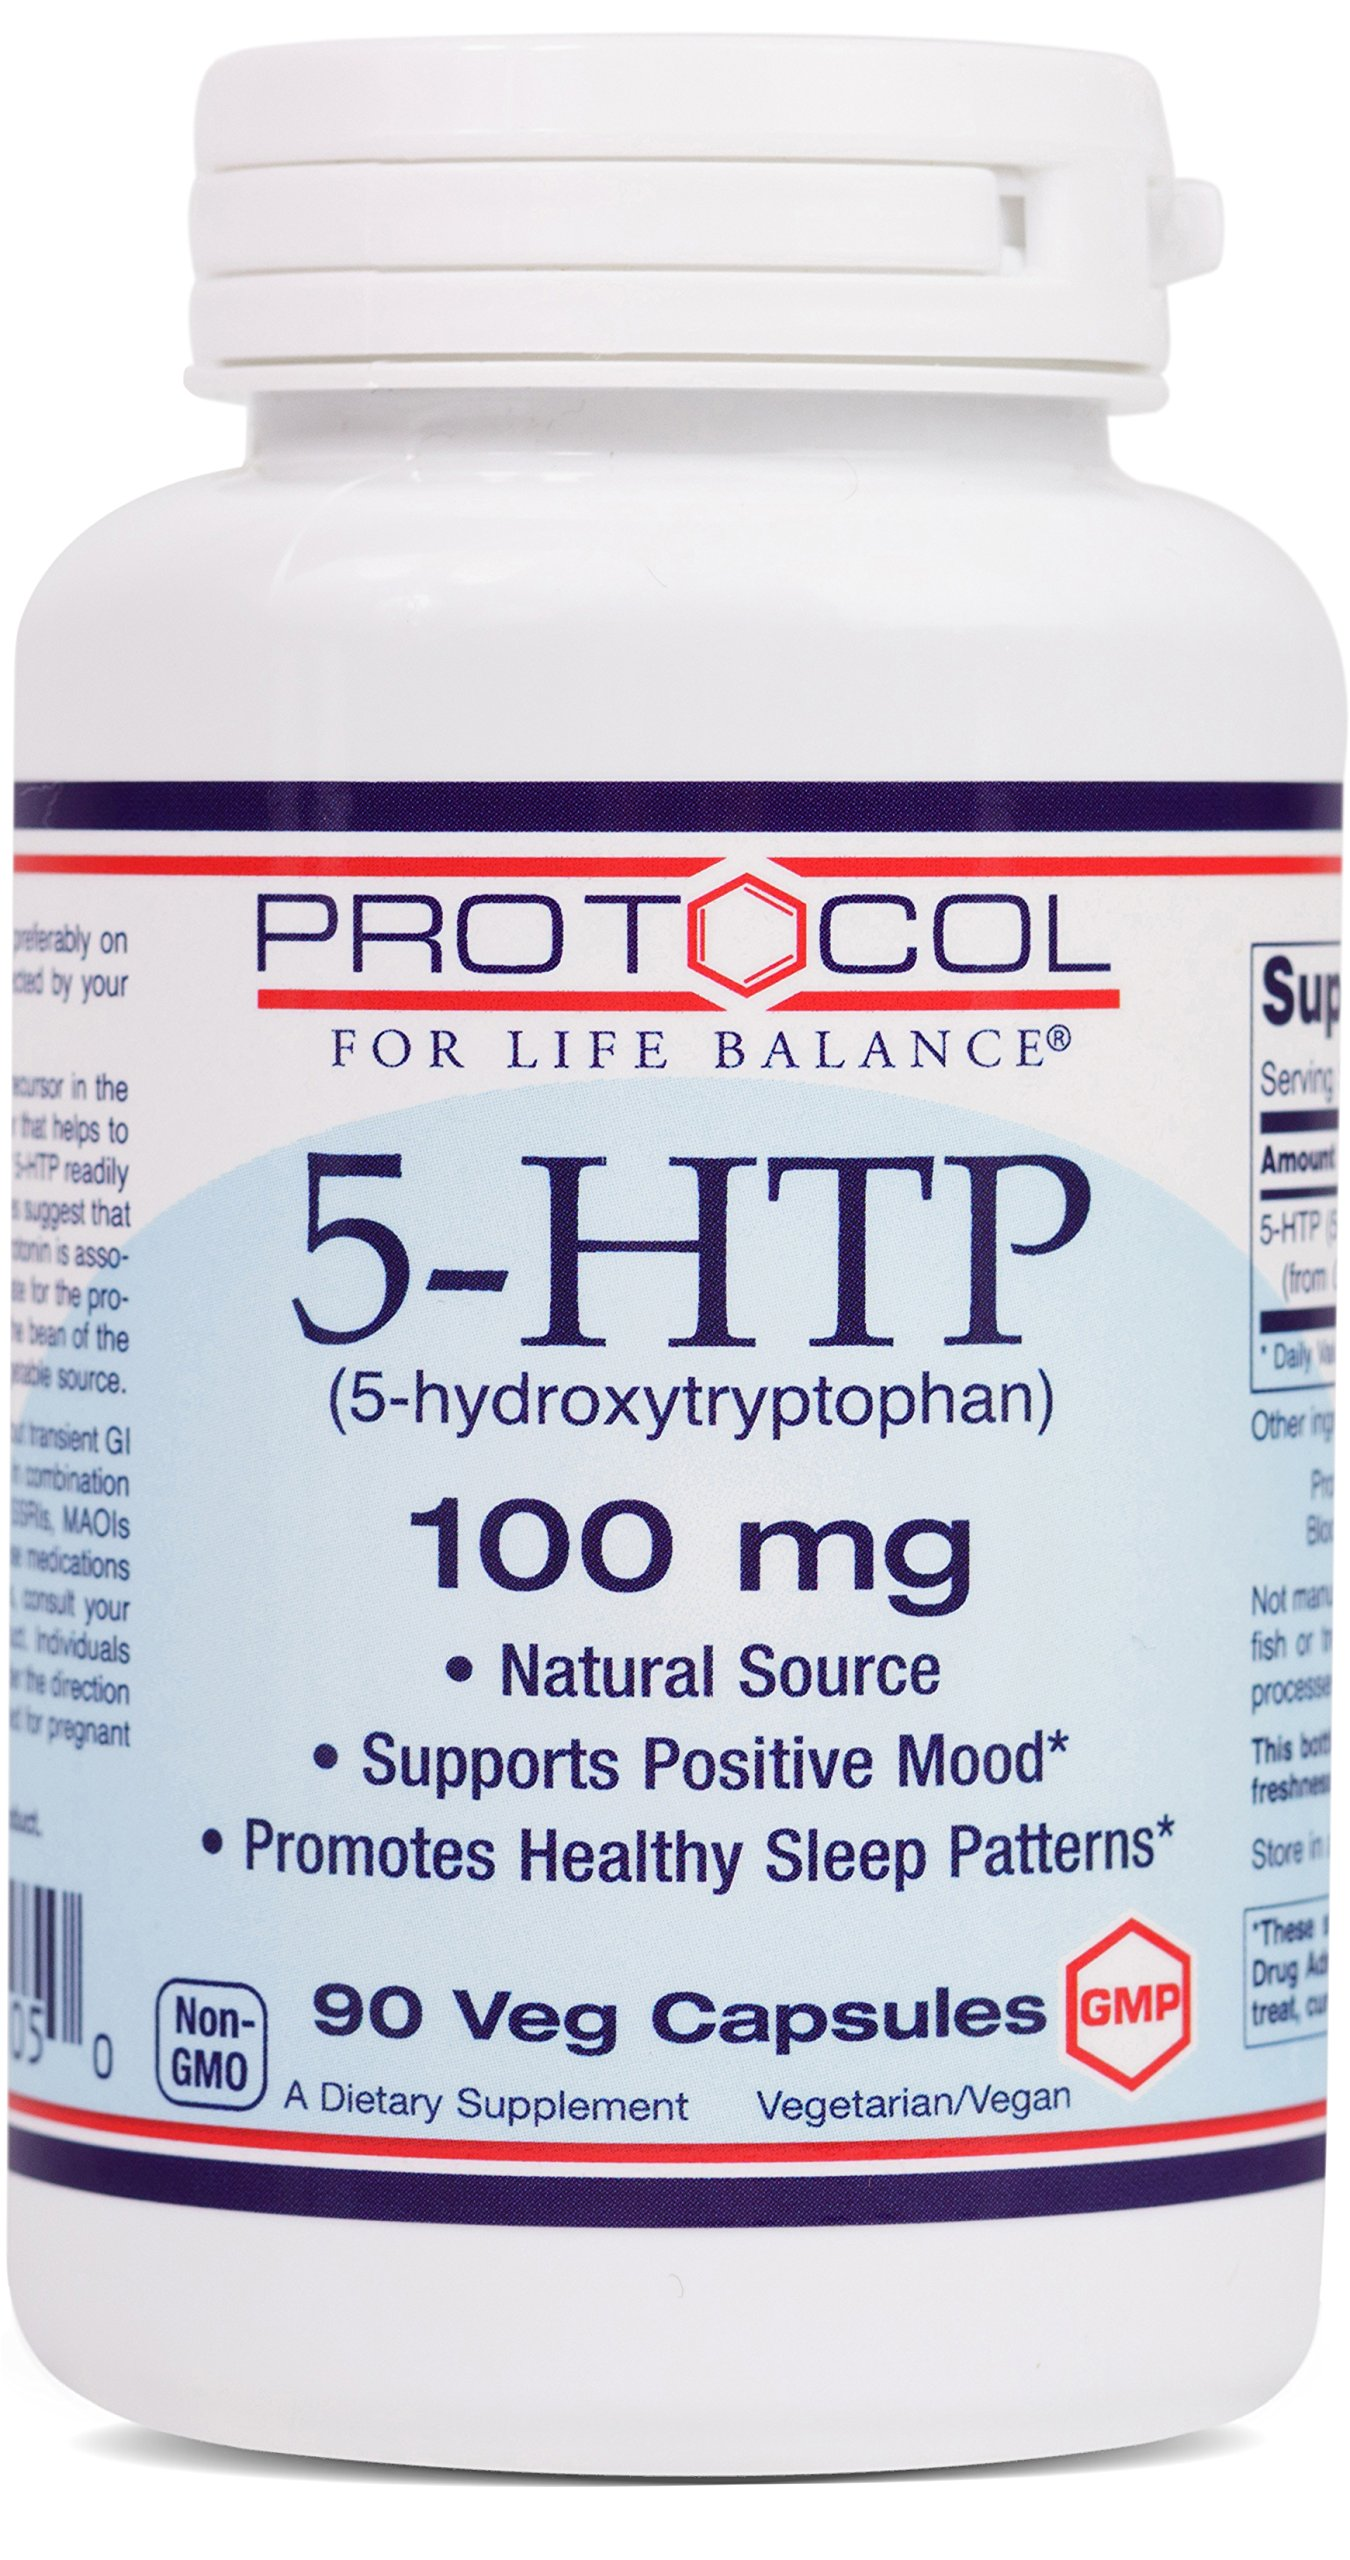 Protocol For Life Balance - 5-HTP (5-hydroxytryptophan) 100 mg - Supports Positive Mood, Promotes Healthy Sleep Patterns, Natural Weight Loss, Supports Appetite Suppression - 90 Vcaps